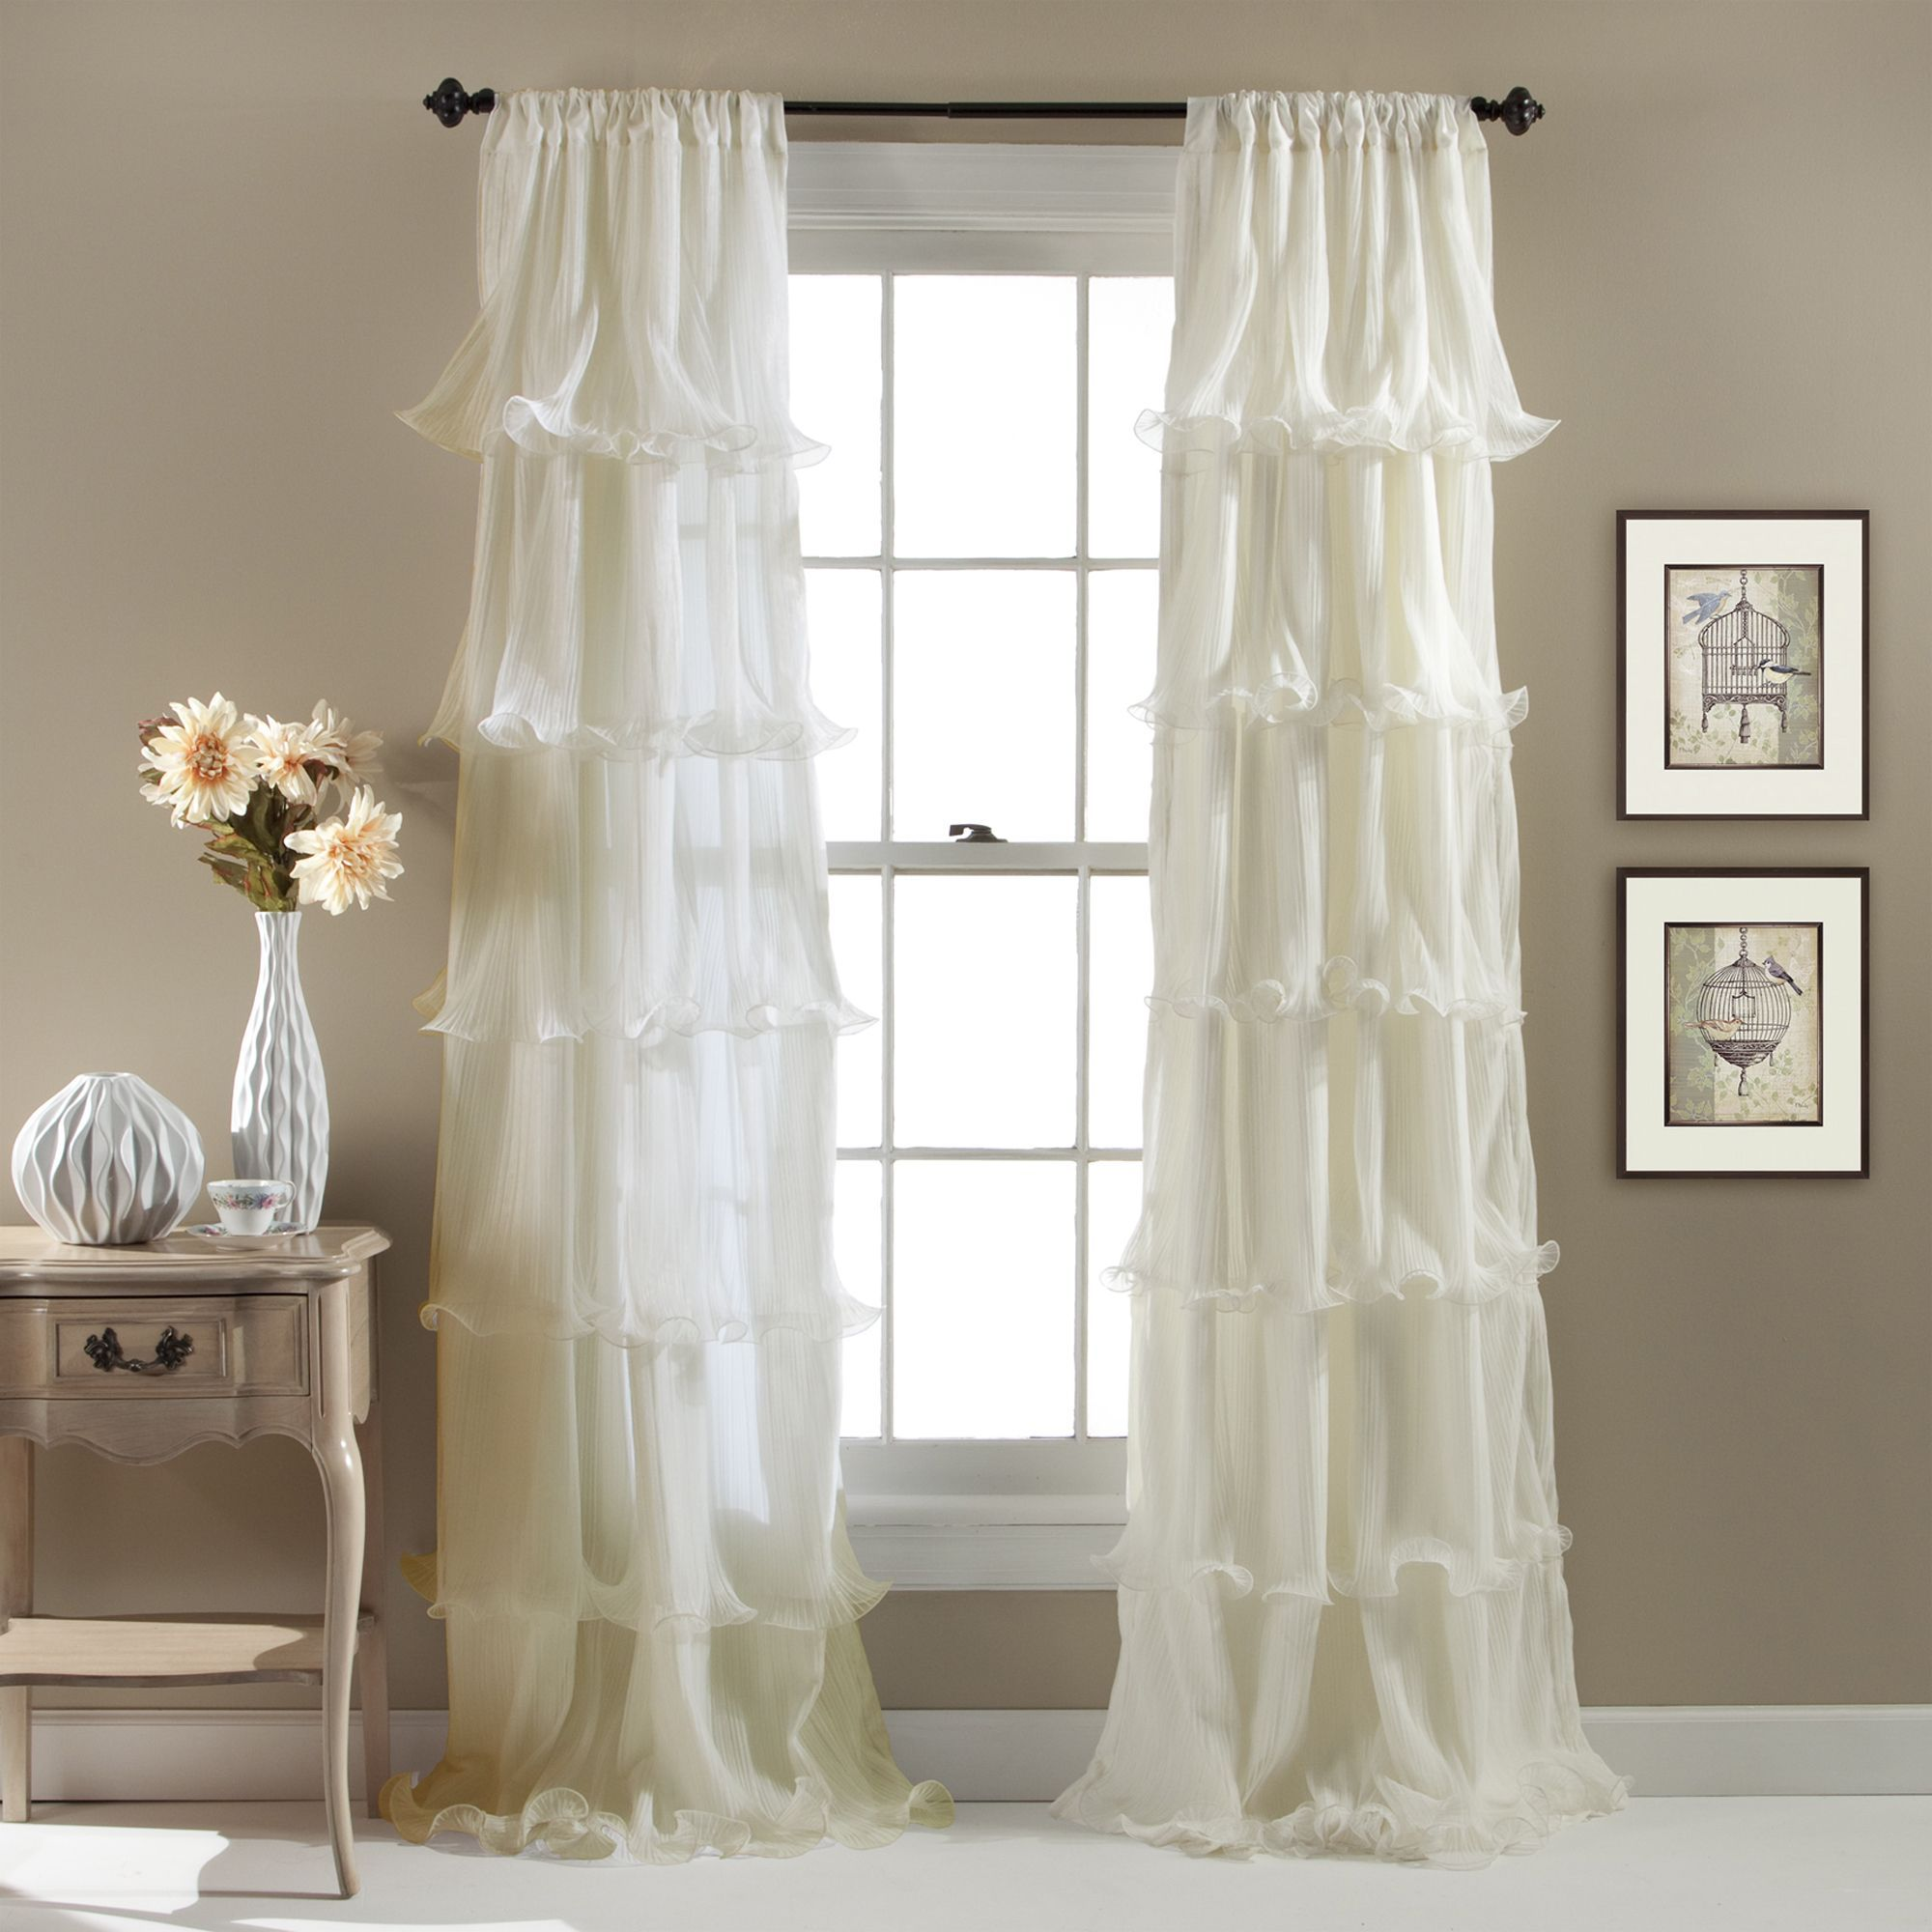 Add A Delicate Touch To Your Windows With These Microfiber Curtains From  Lush Decor. These